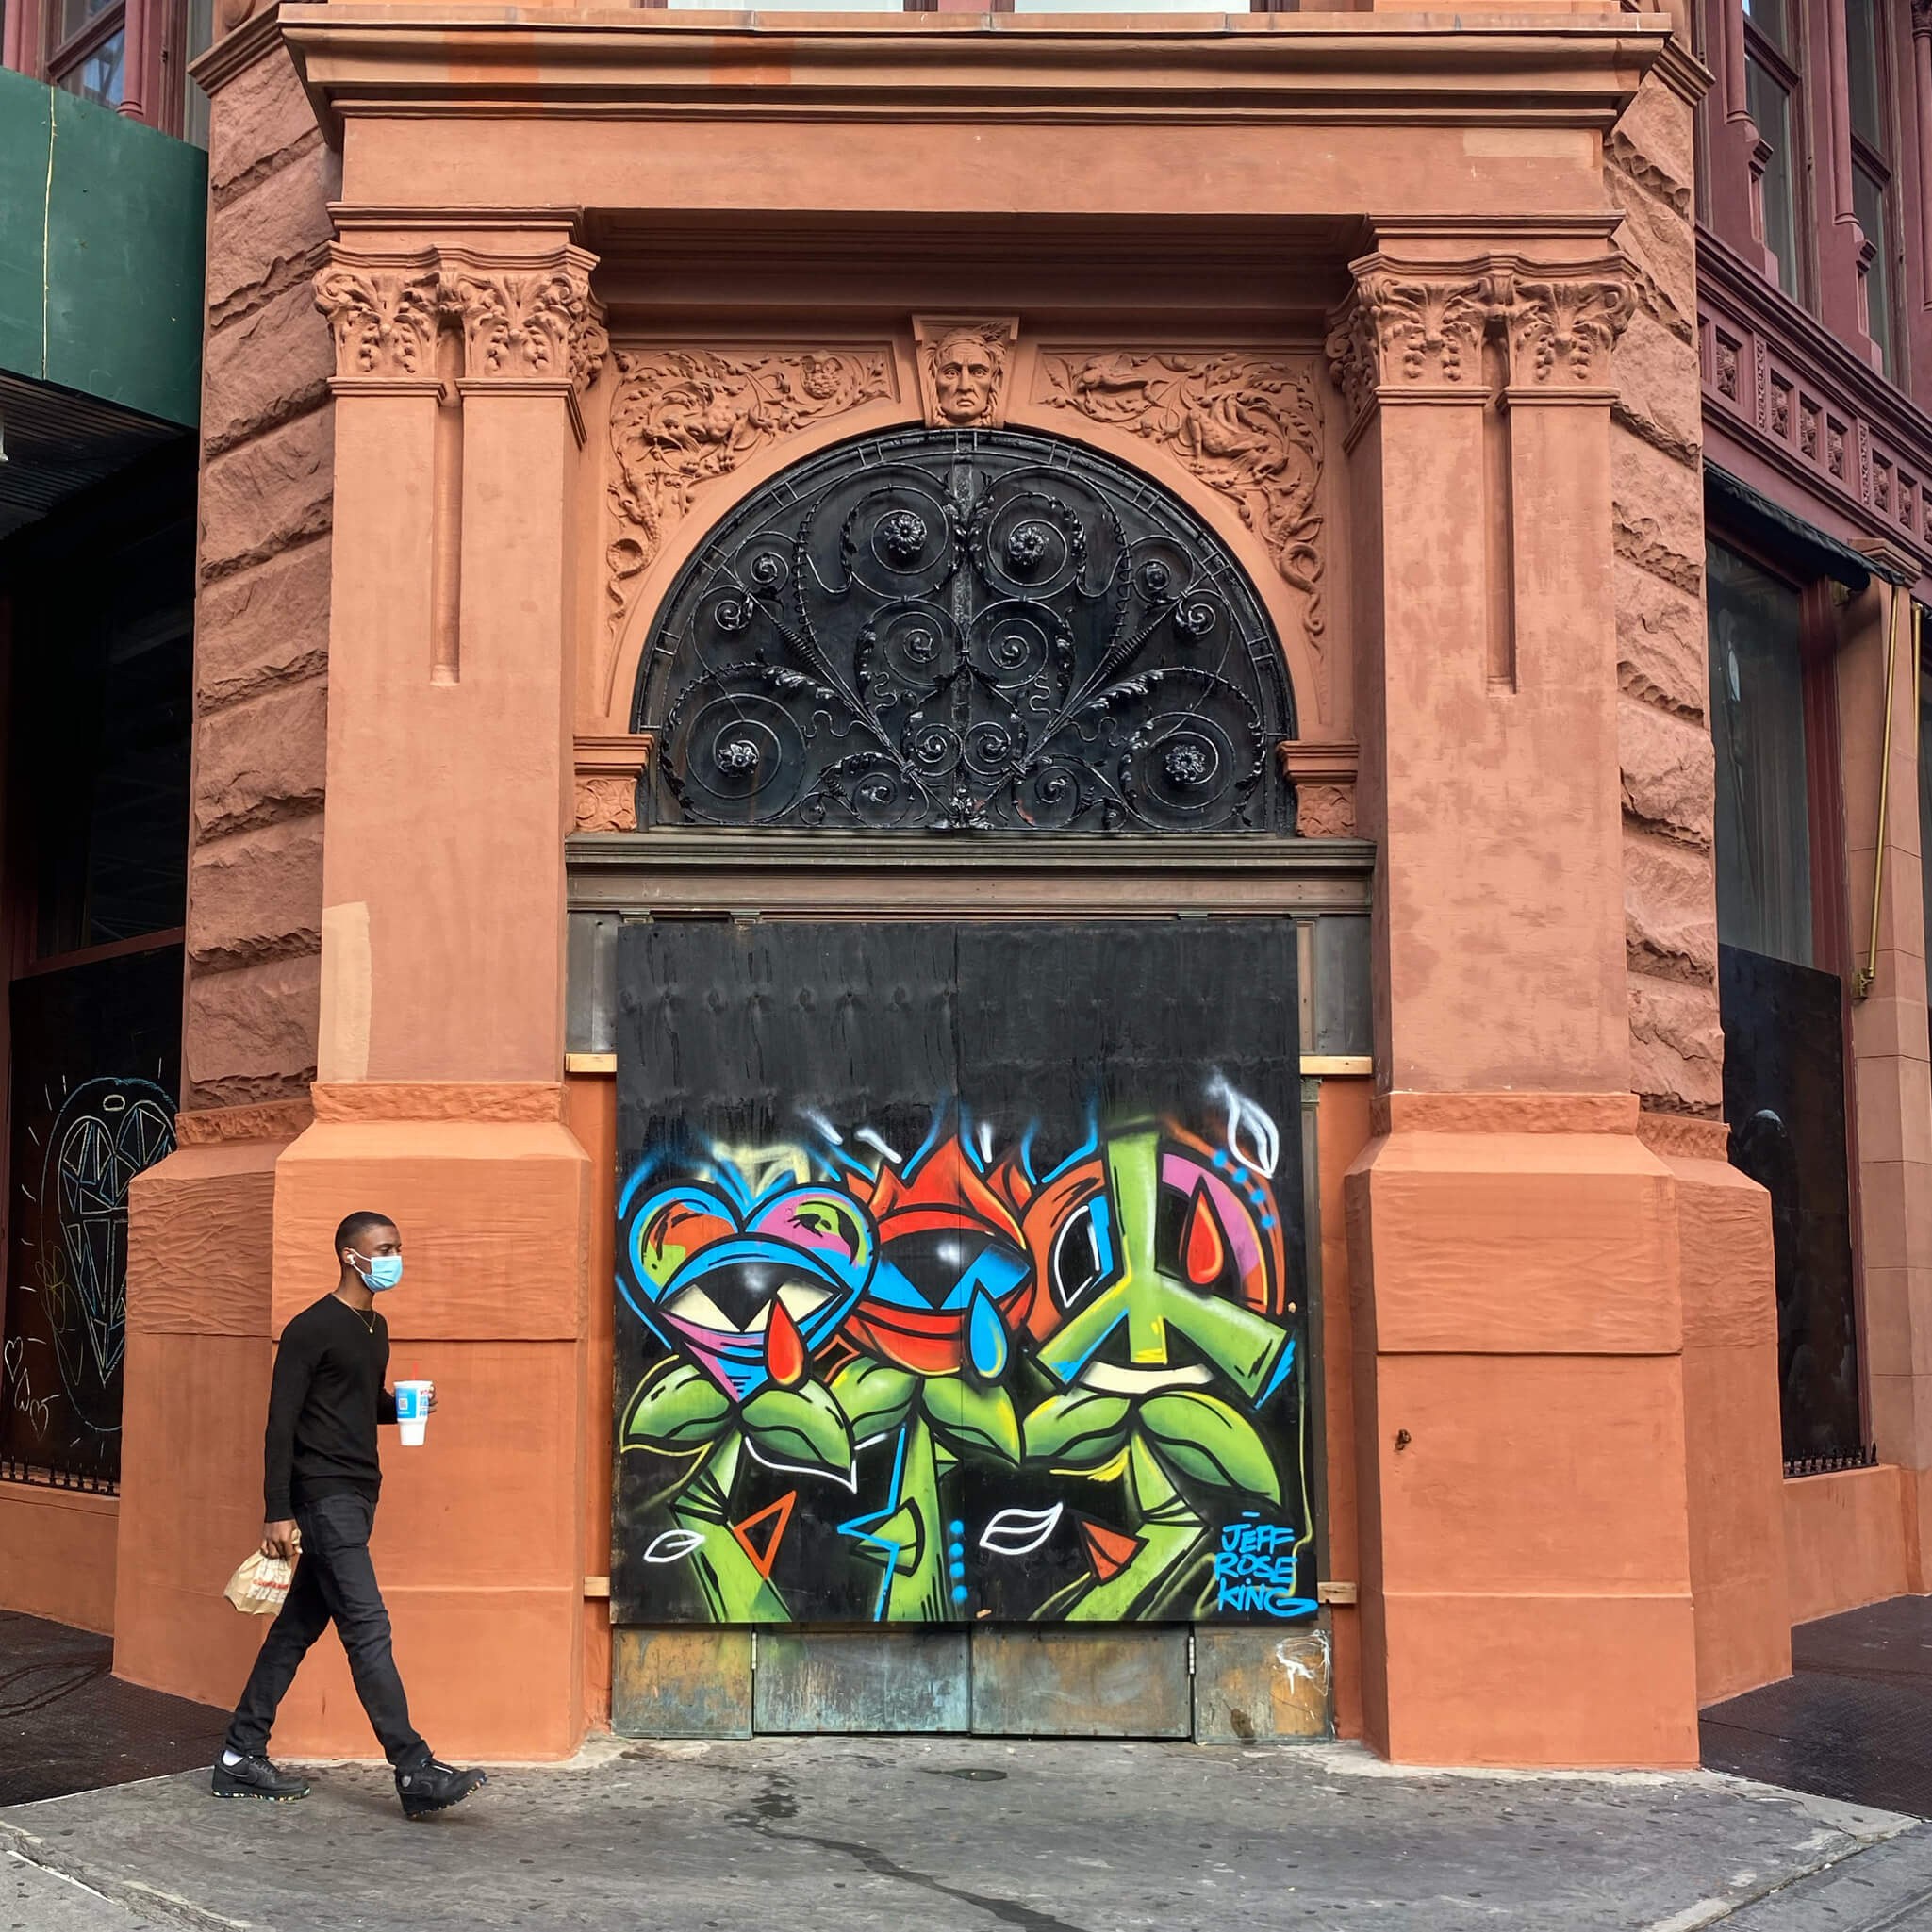 Stride by with man in mask Street Art Photography by Sarah Sansom